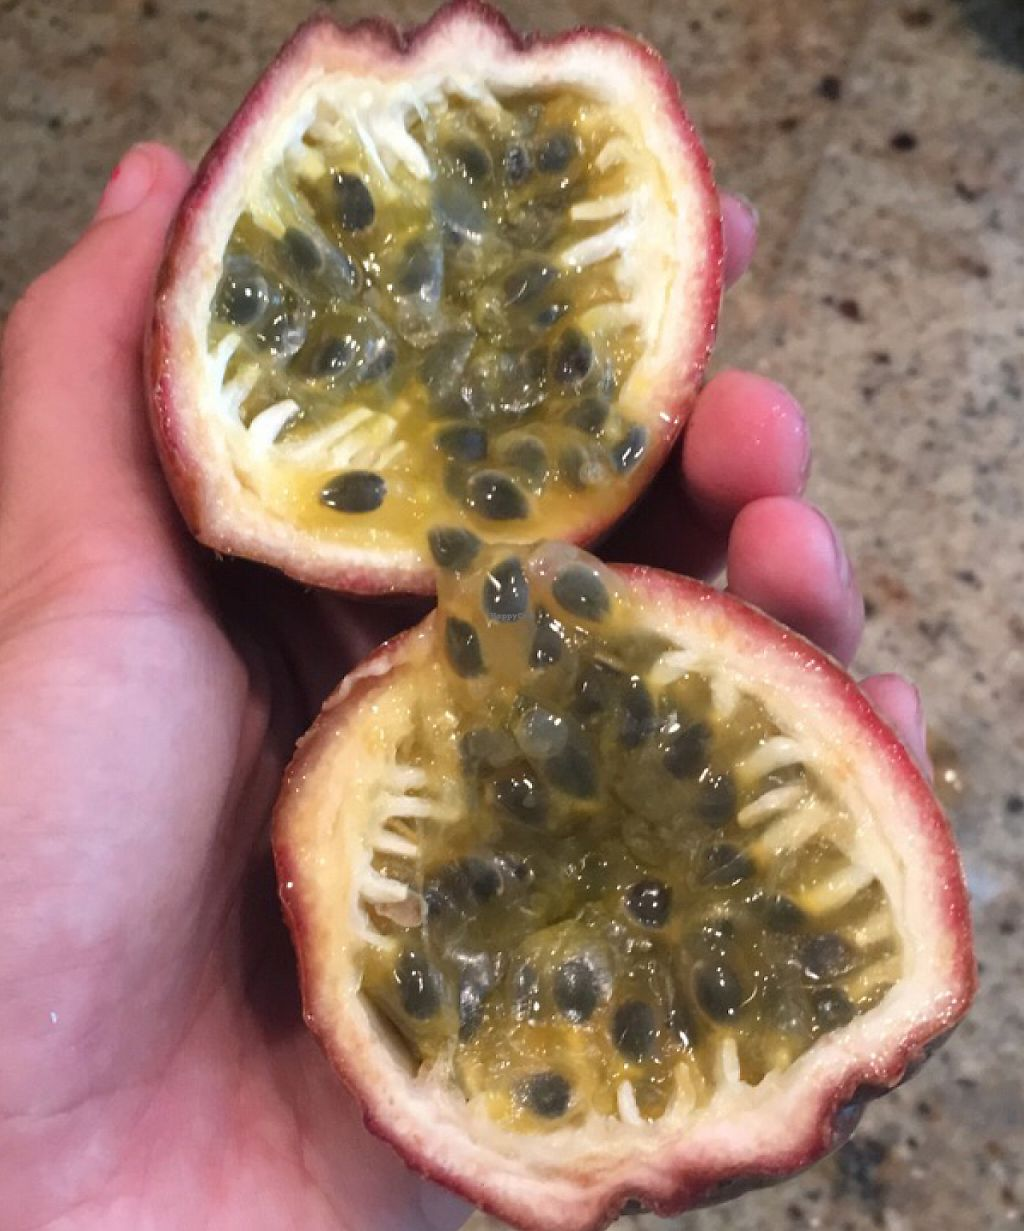 """Photo of Robert is Here  by <a href=""""/members/profile/jamie1999"""">jamie1999</a> <br/>passion fruit I bought from there (very expensive) <br/> July 9, 2016  - <a href='/contact/abuse/image/54095/196135'>Report</a>"""